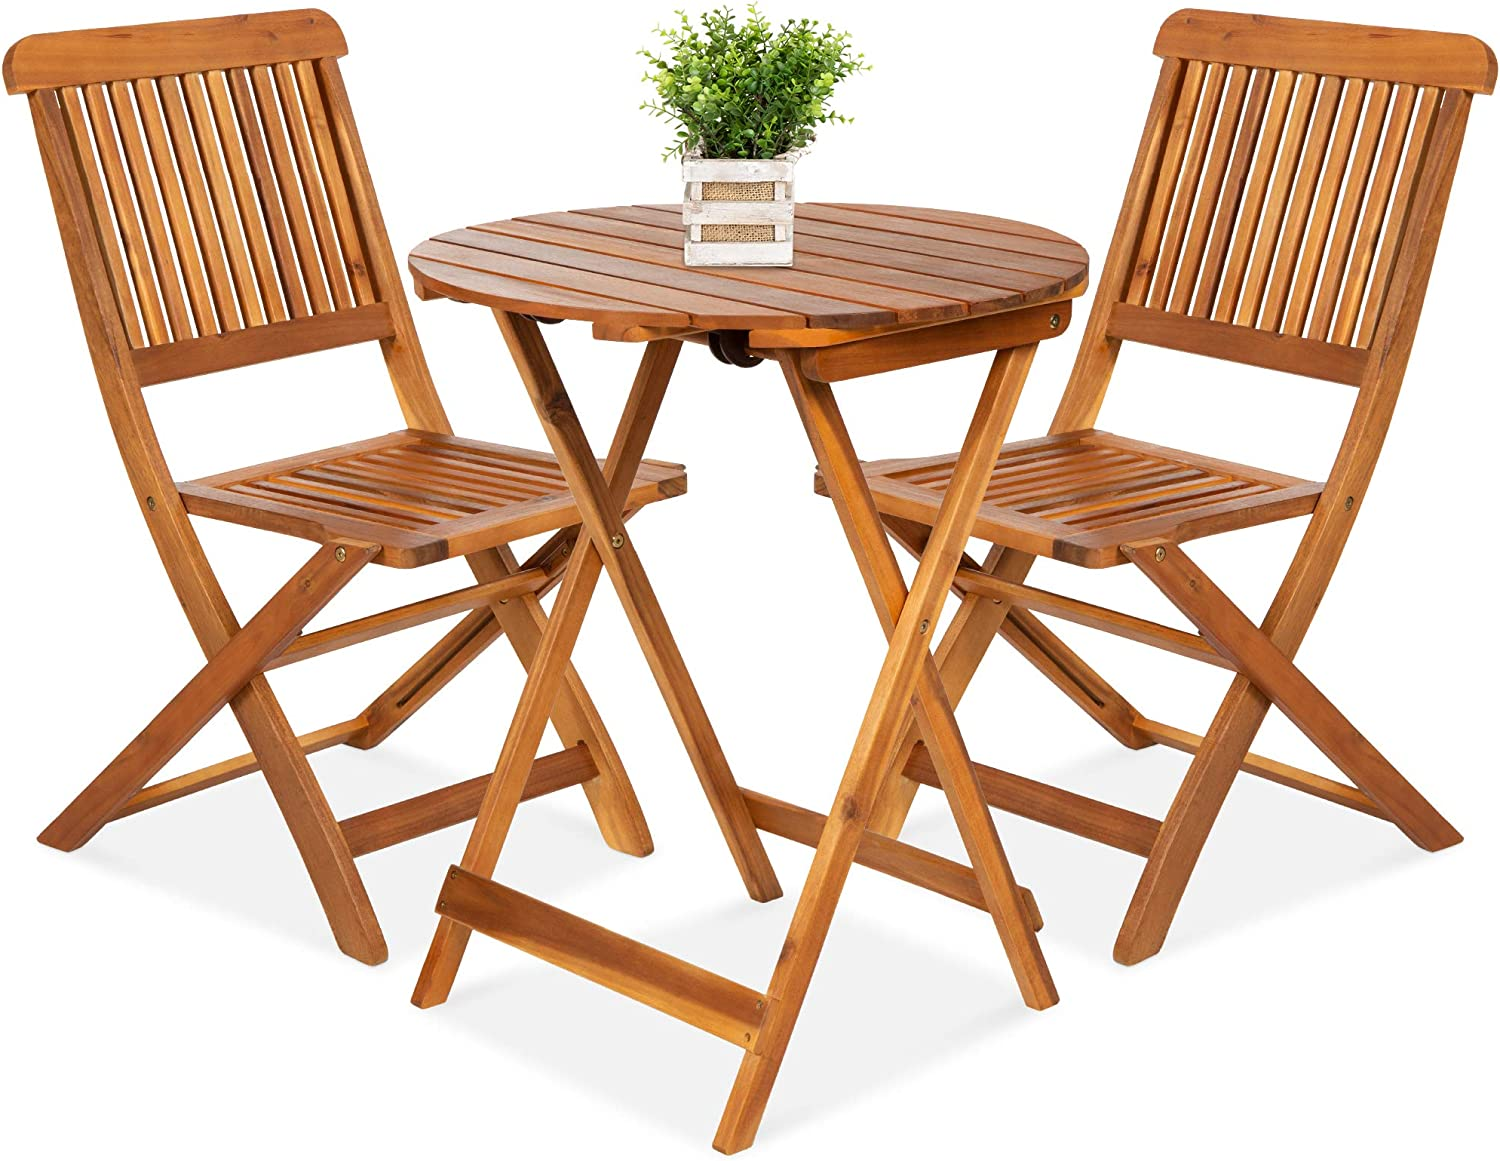 Best Choice Products 3 Piece Acacia Wood Bistro Set Folding Patio Furniture For Backyard Balcony Deck W 2 Chairs Round Coffee Table Teak Finish Natural Garden Outdoor